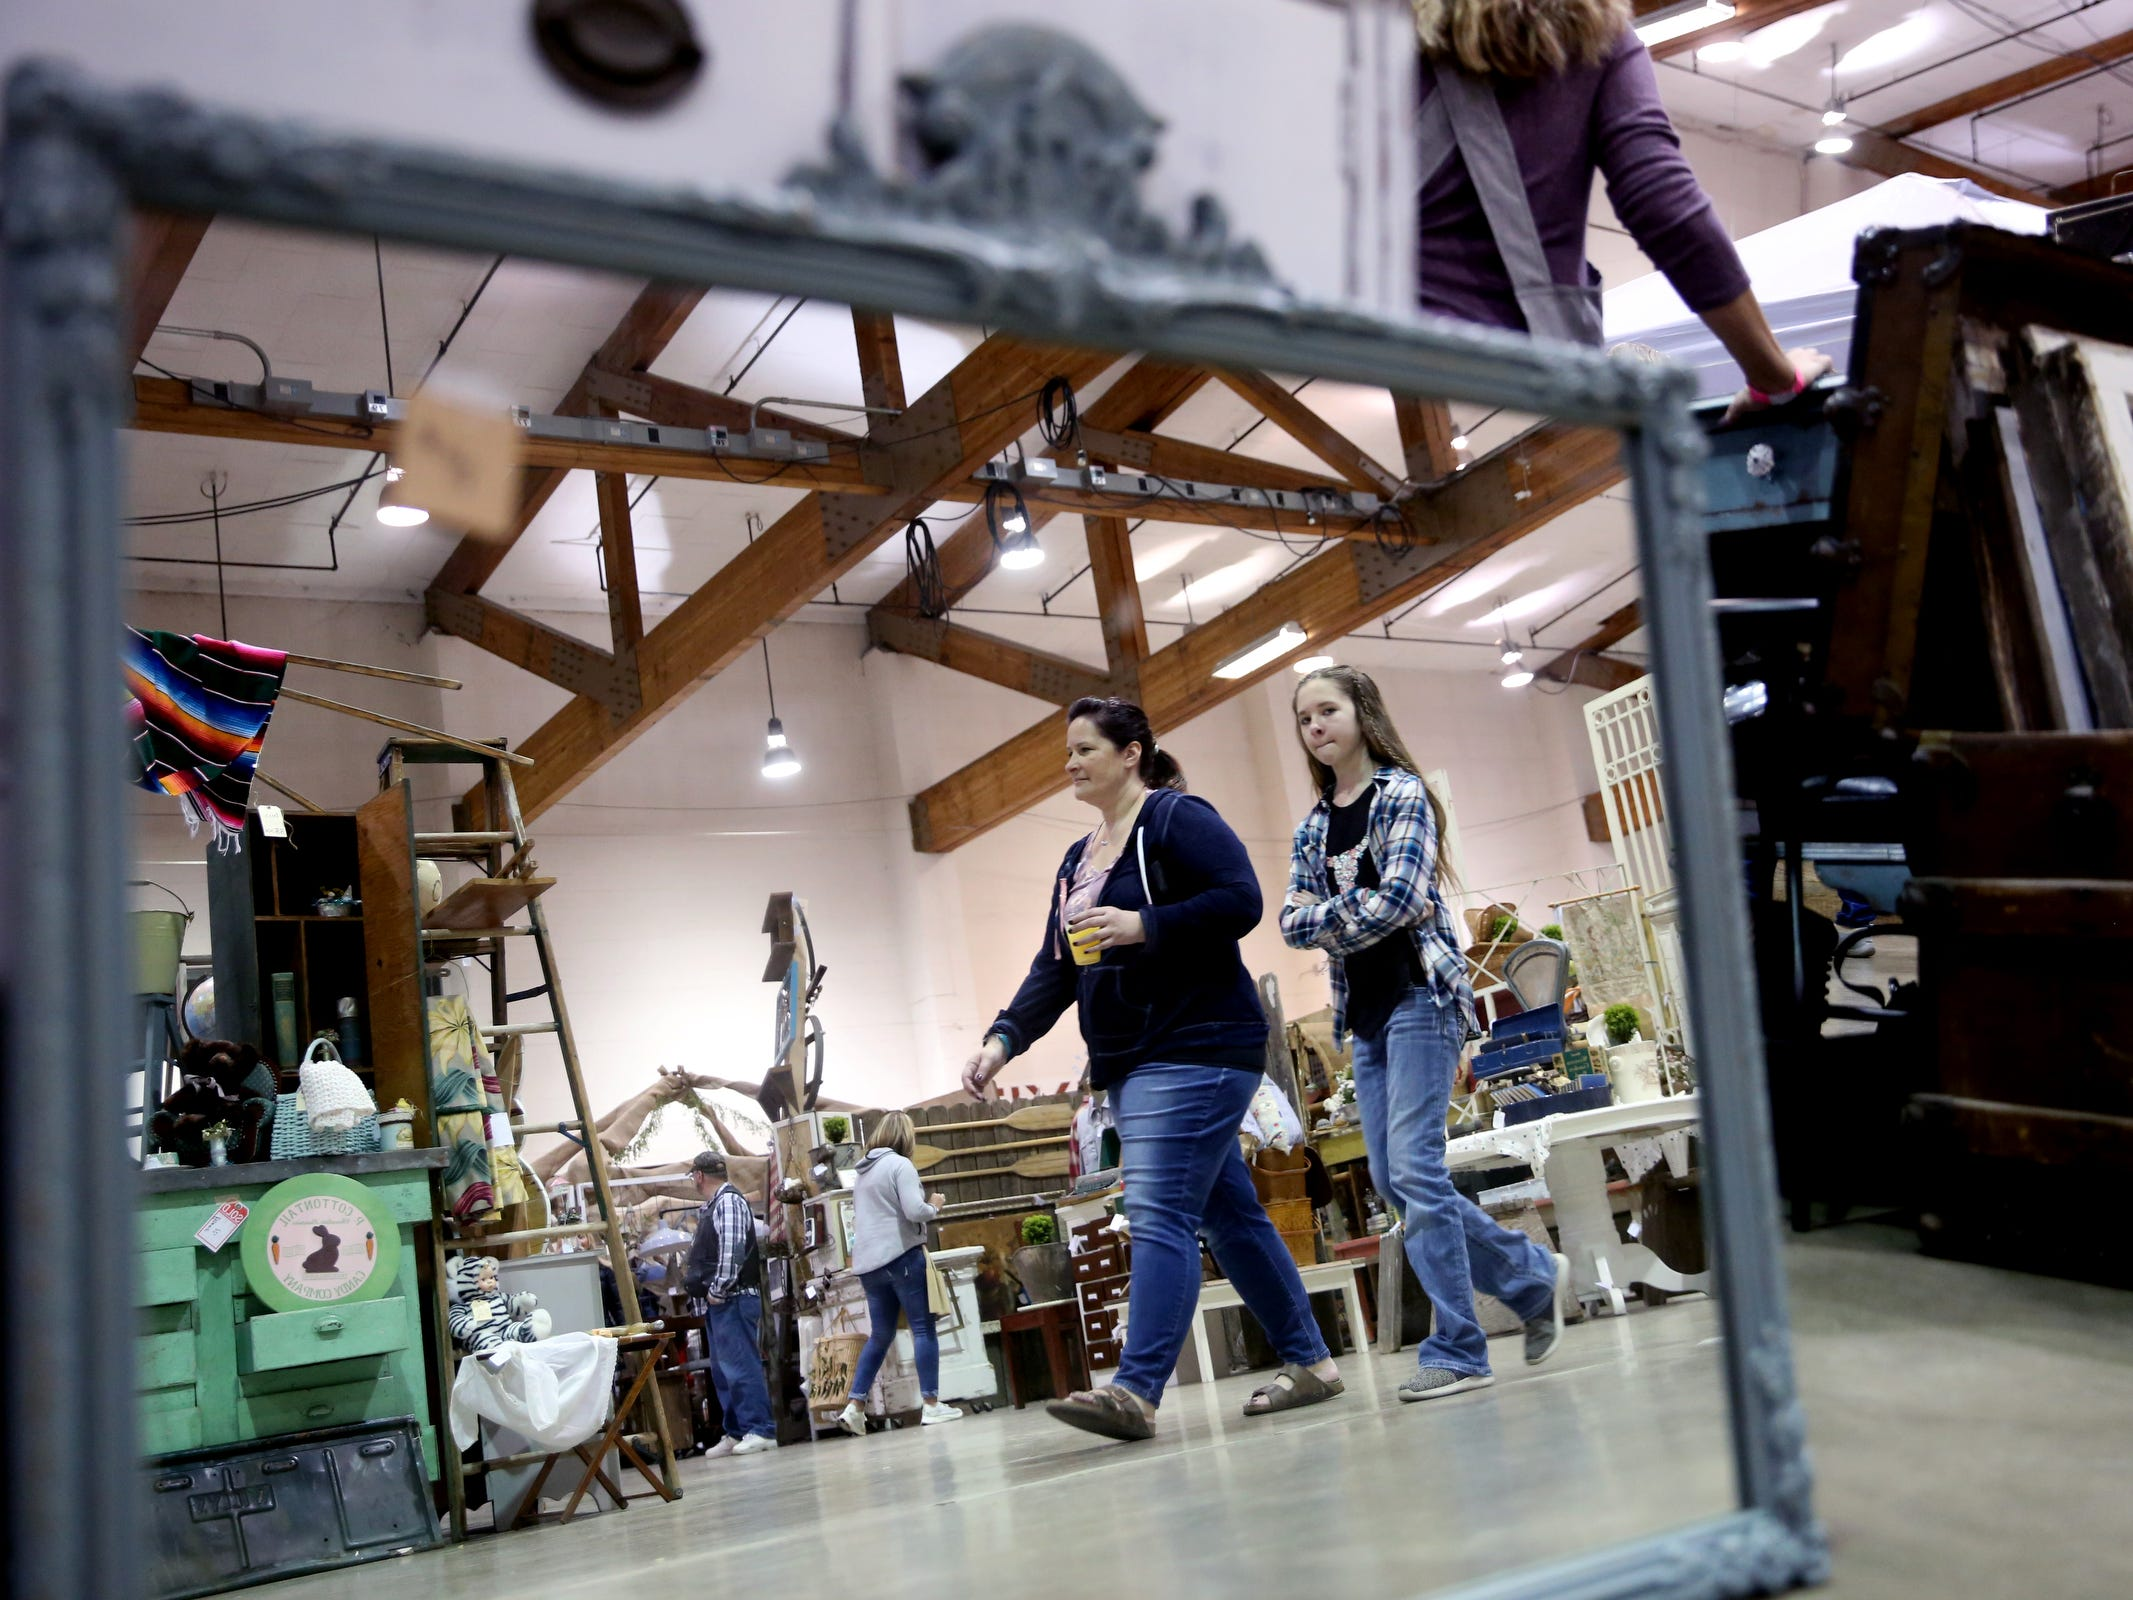 Shoppers are reflected in a mirror available during The Great Junk Hunt, a traveling vintage market, at the Oregon State Fairgrounds in Salem on April 13, 2019.